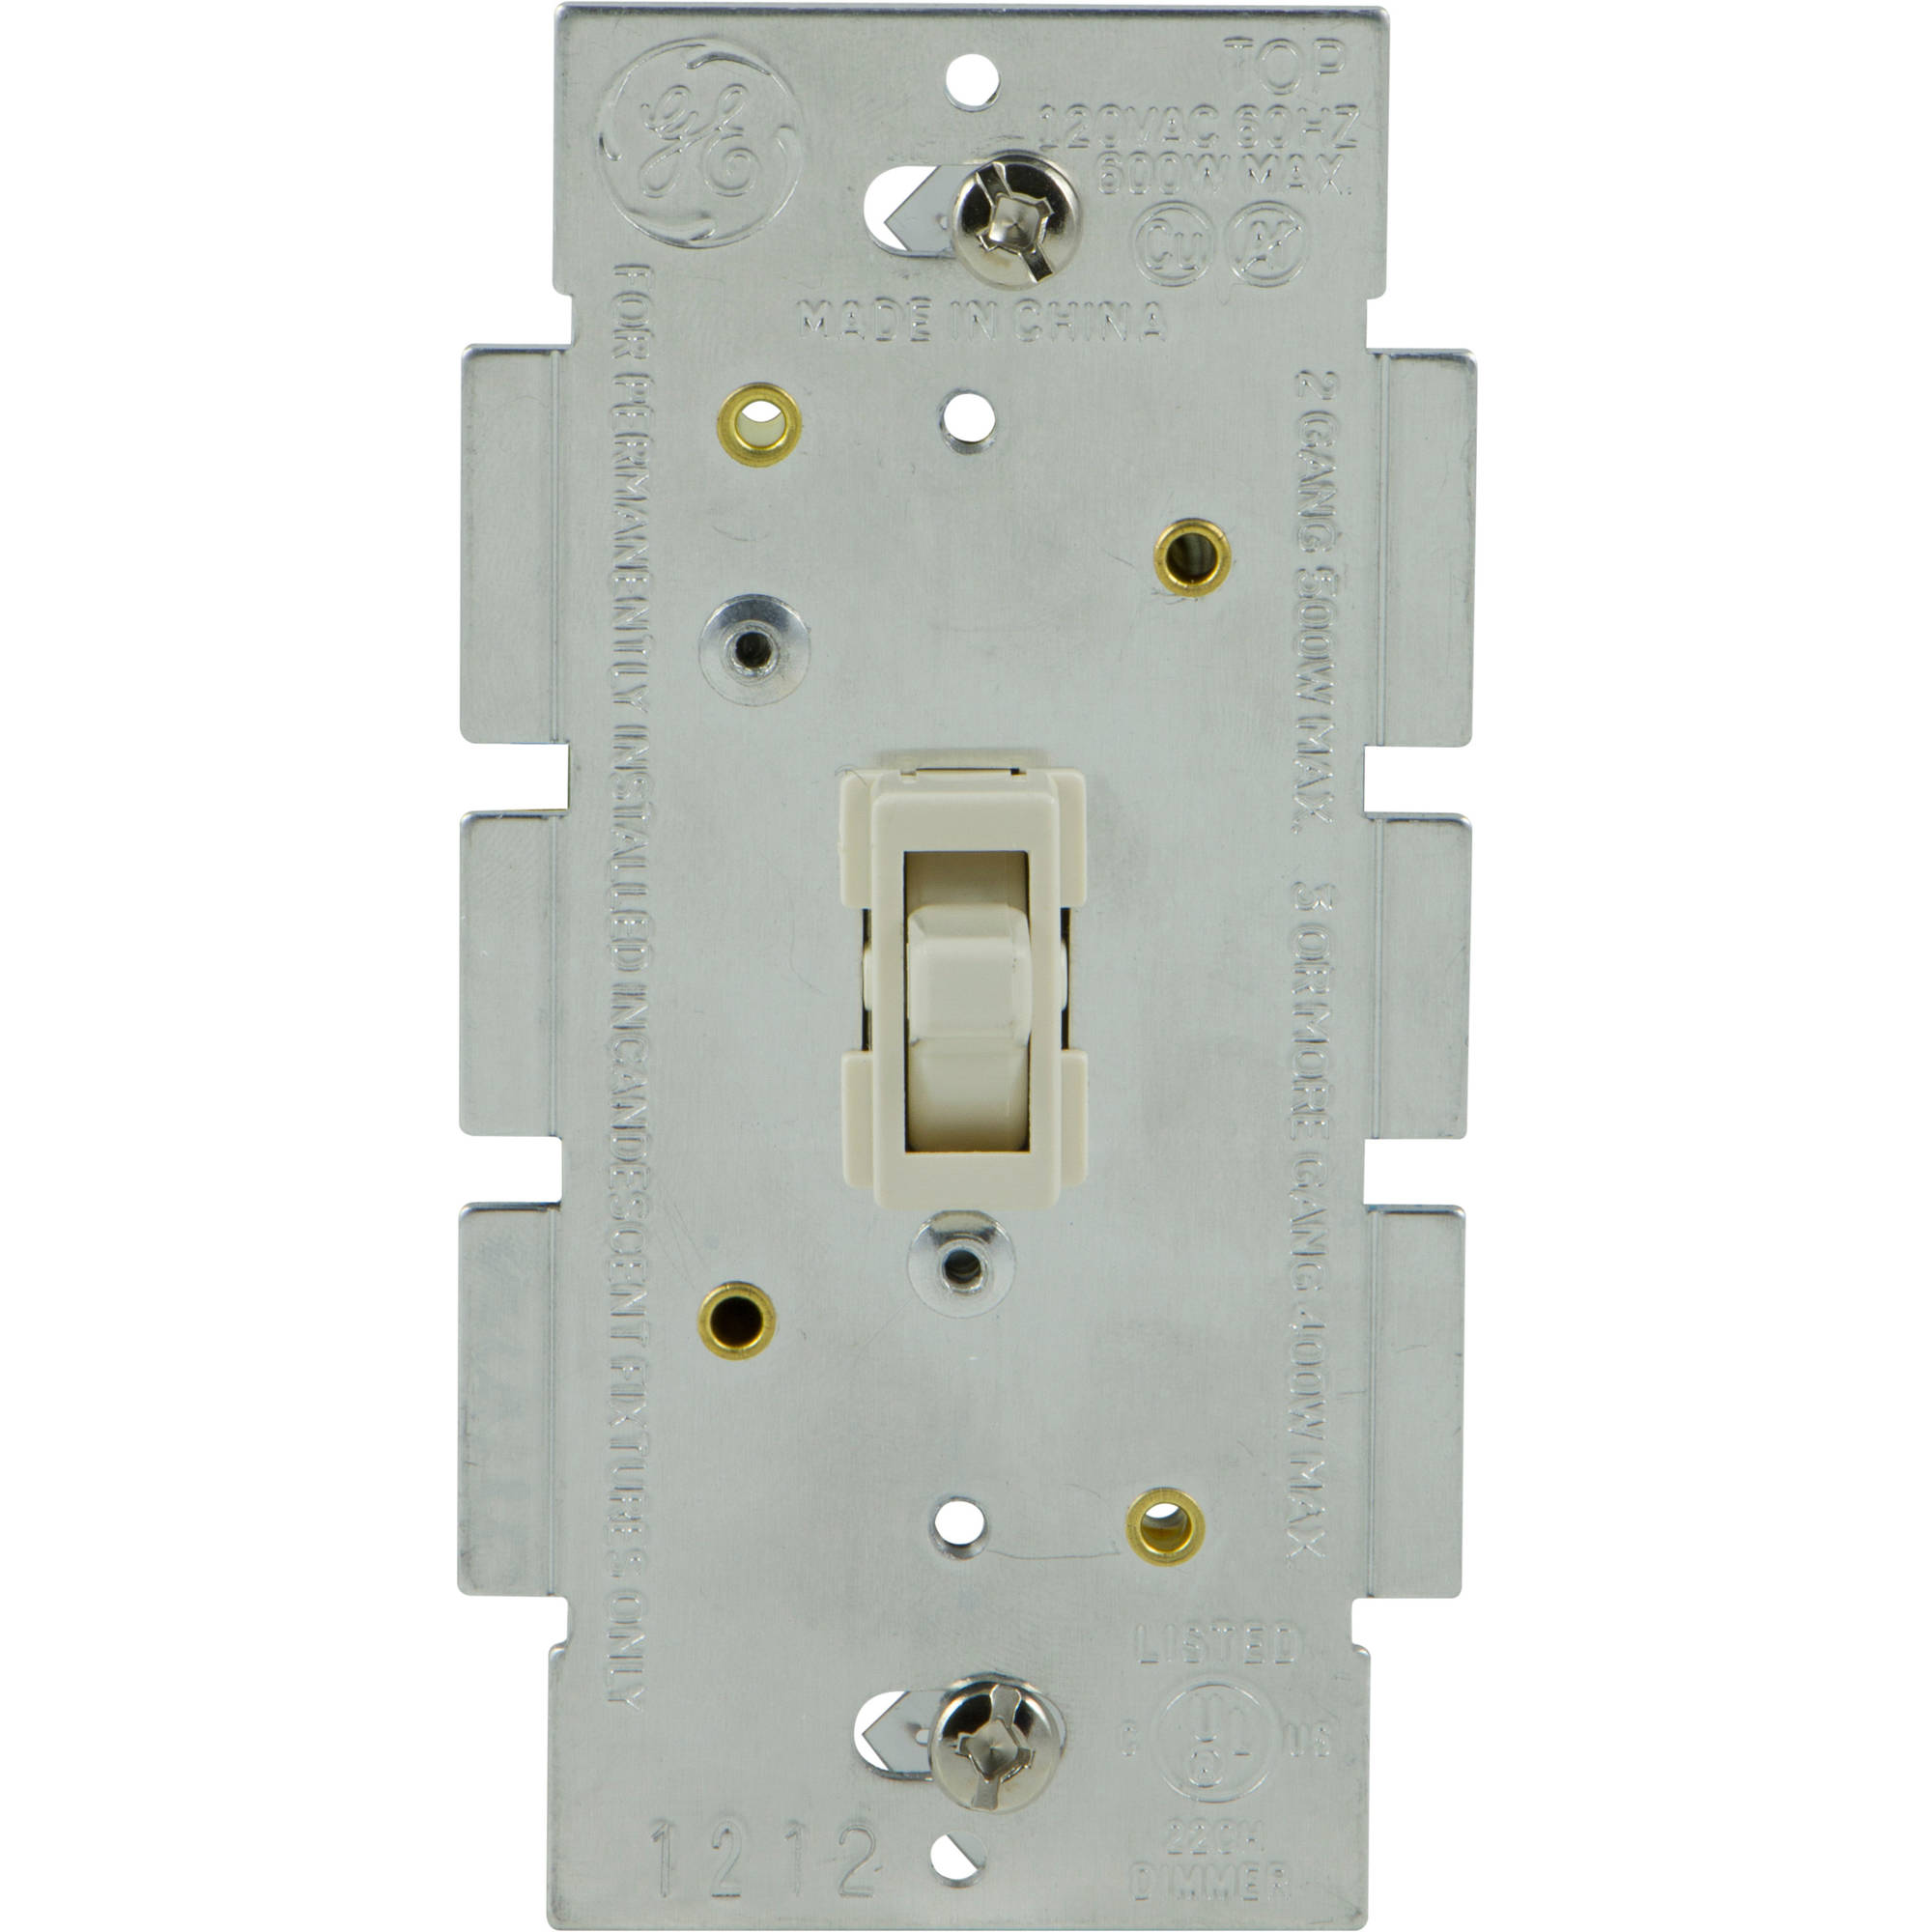 GE In-Wall Light Switch Dimmer, for Incandescent, LED, CFL Dimmable Bulbs, Single Pole, Ivory, 15053